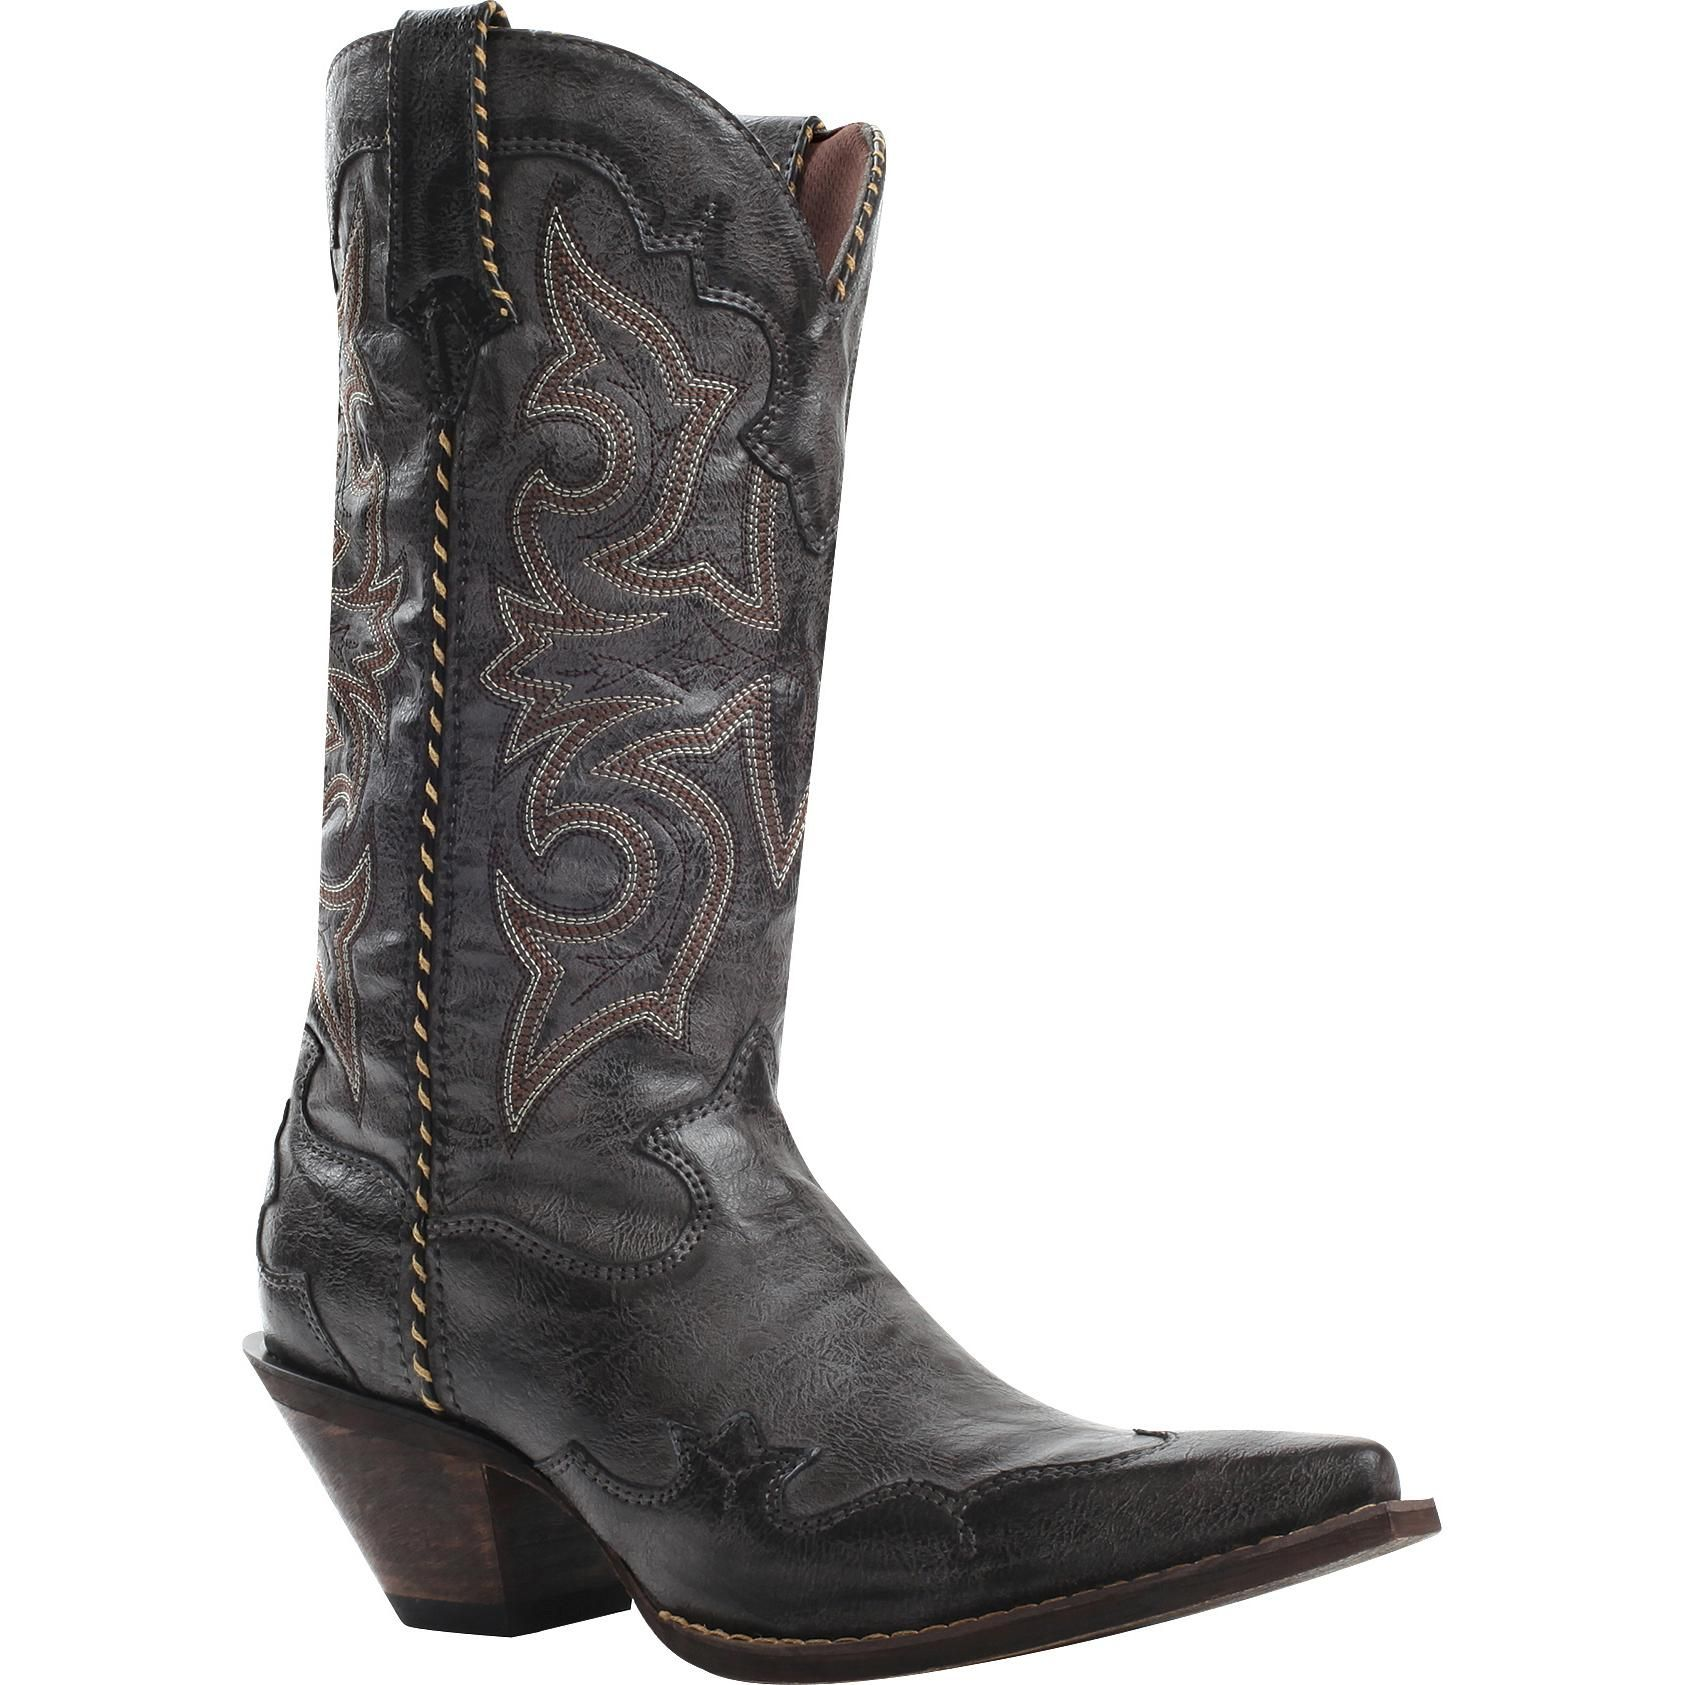 Leather western boots, Western boots